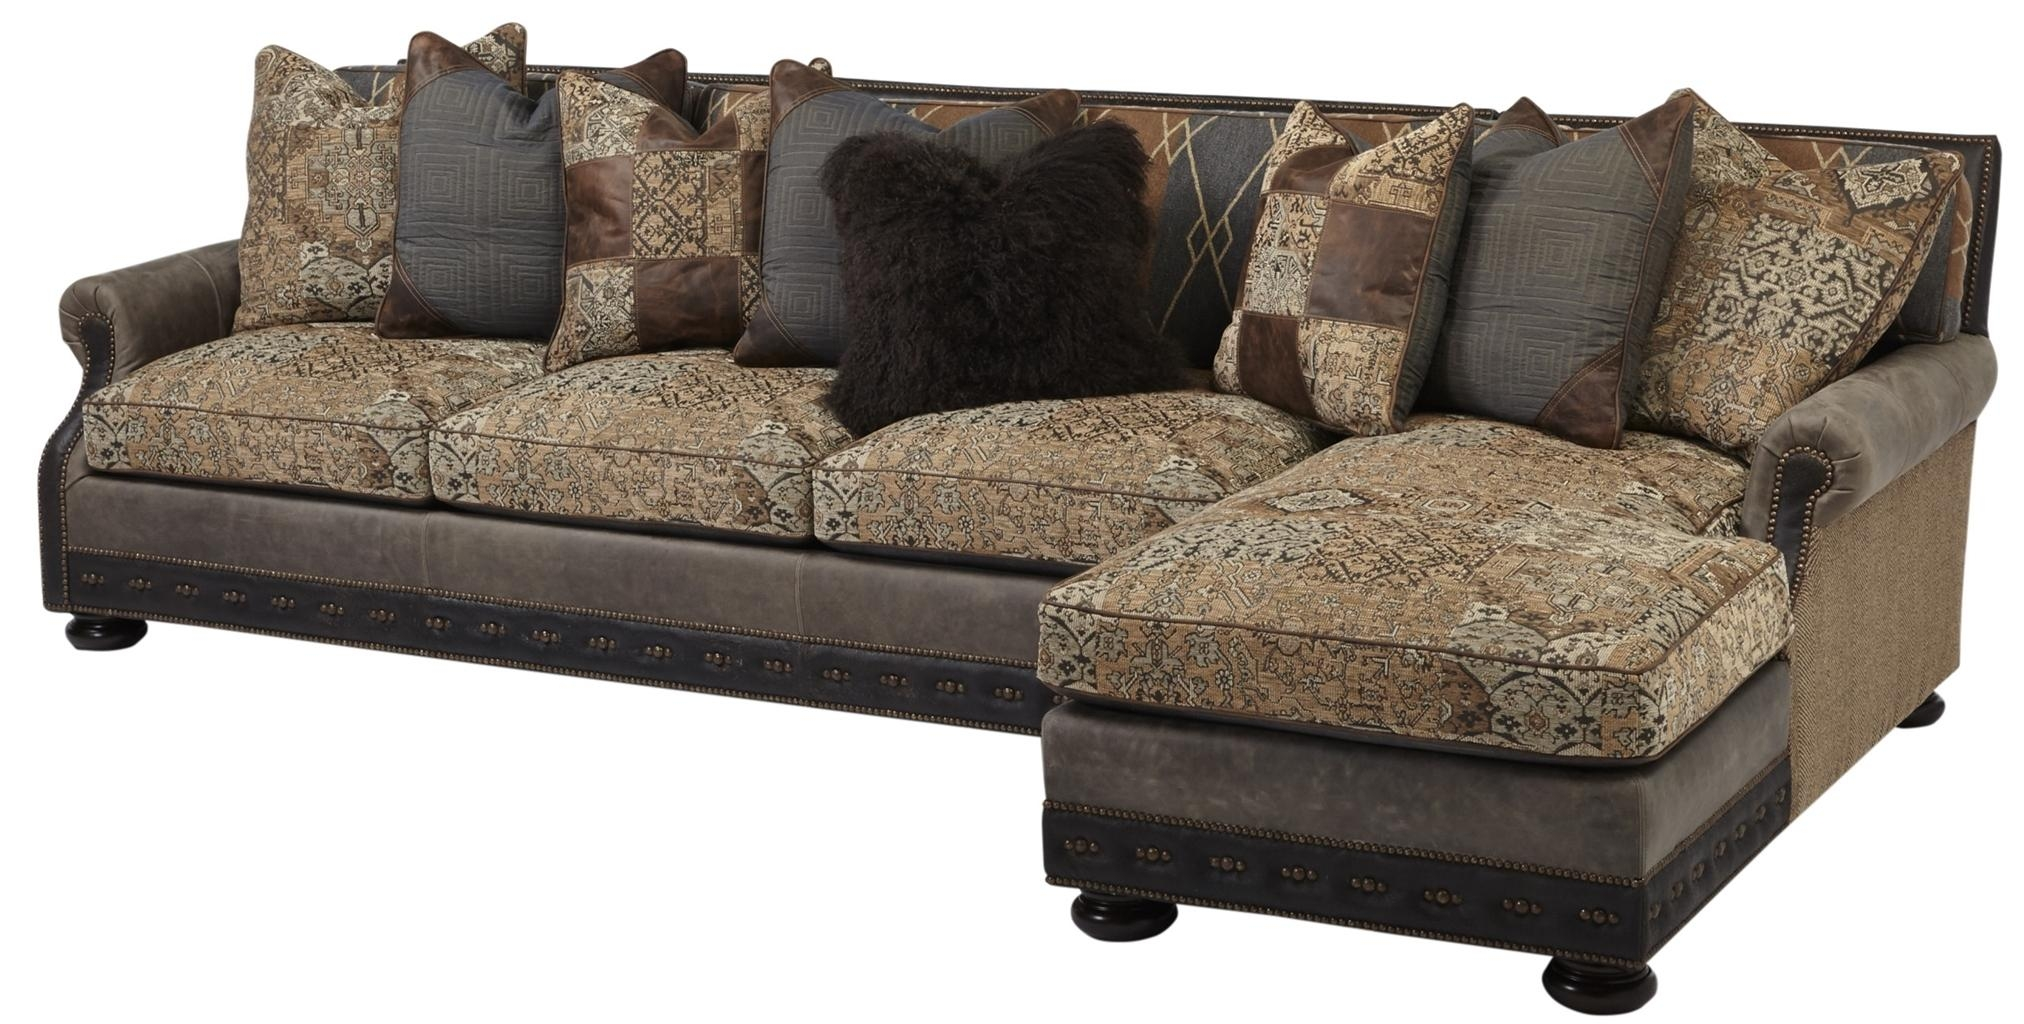 Cool Sofa With Chaise Lounge. High End Furnishings (Image 5 of 20)